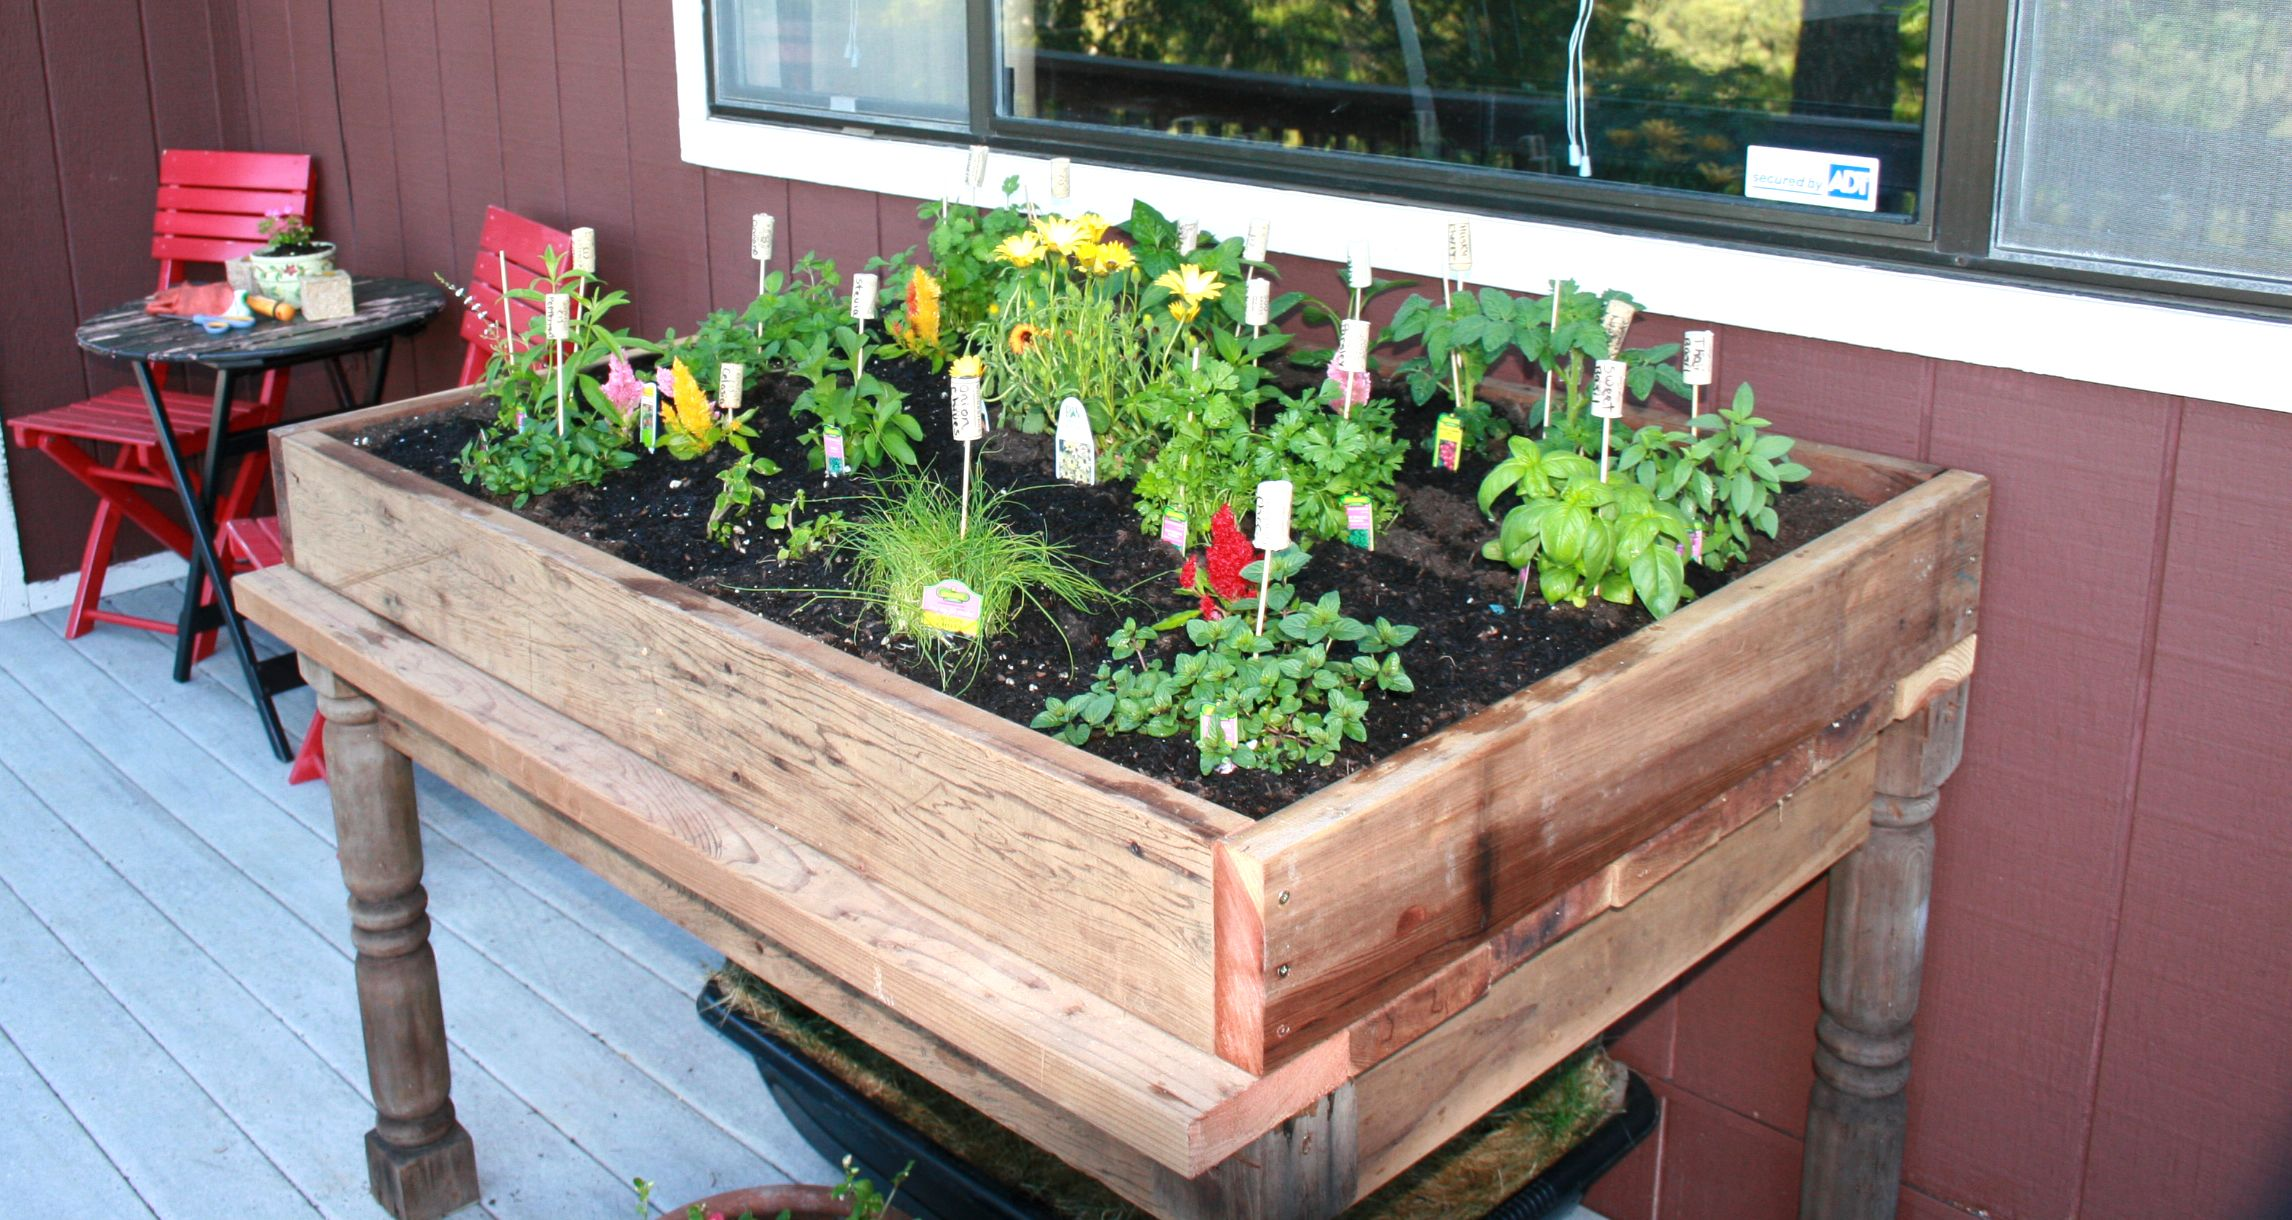 Awesome Picture Of Herb Planter Box Plans: Handmade Herb Garden Box With Your Favorite Herbs